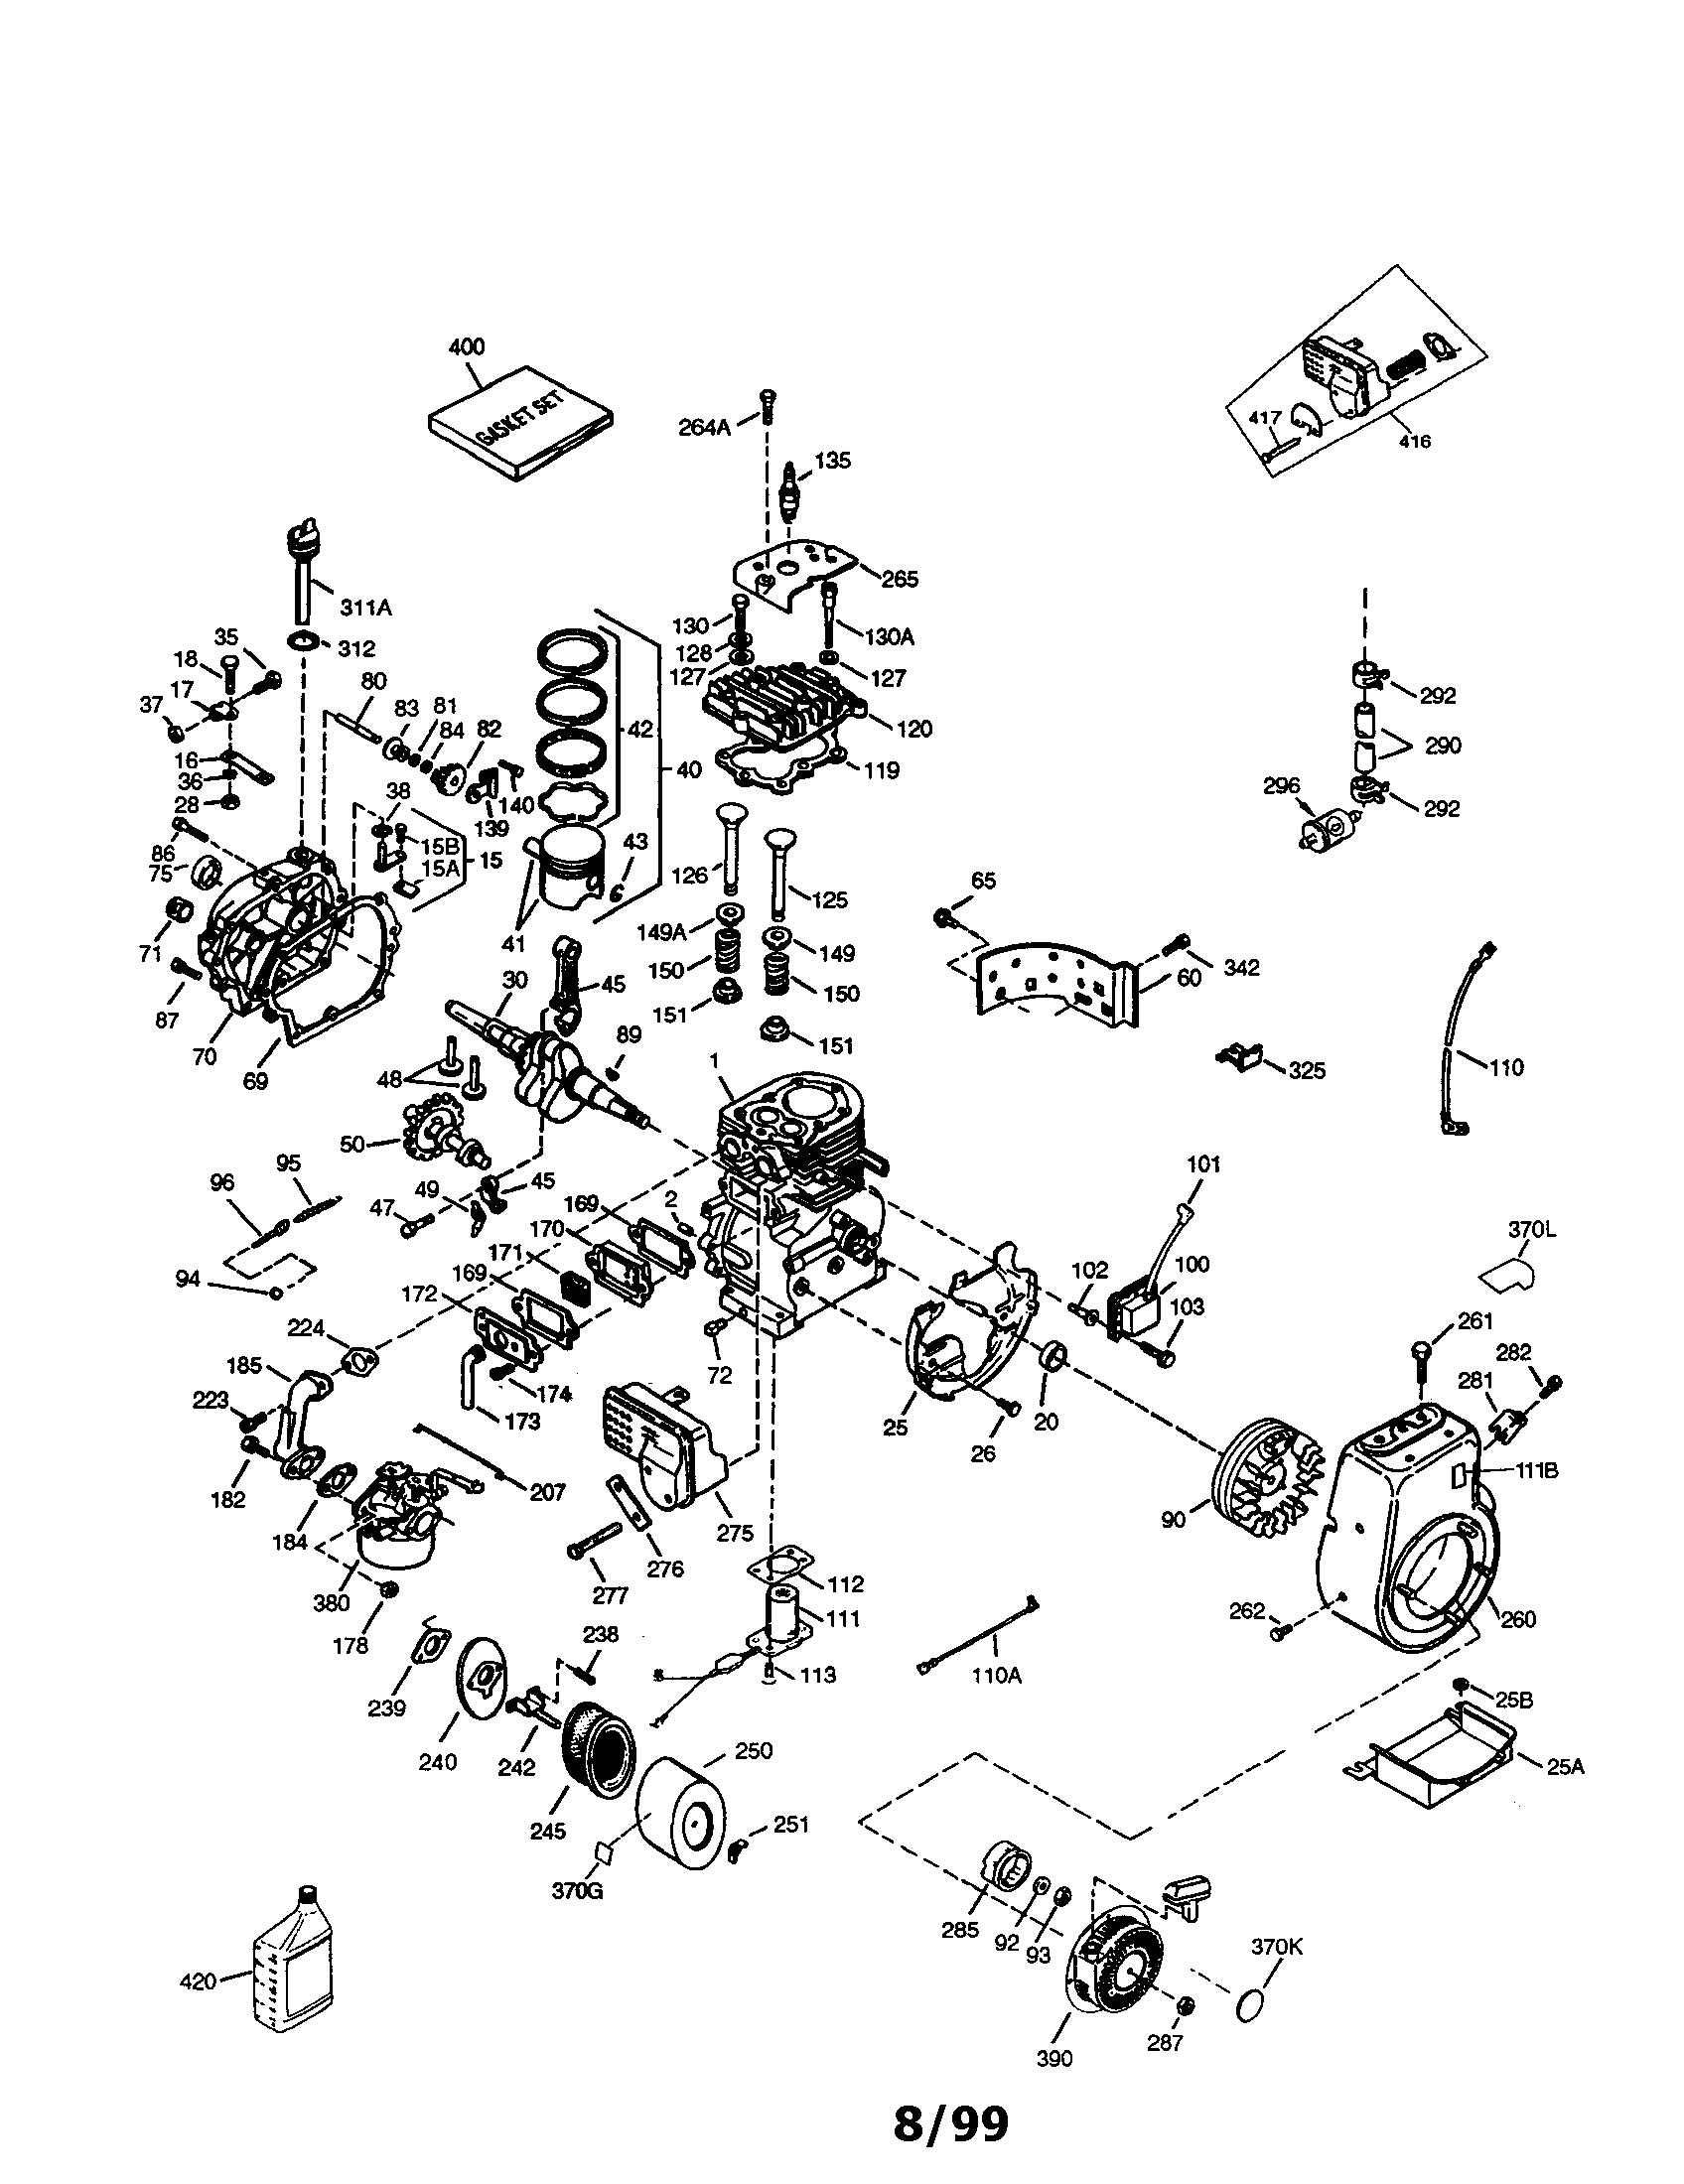 tecumseh engine carburetor diagram tecumseh model hm100 p engine rh detoxicrecenze com Tecumseh Engine Parts Tecumseh Engine Parts